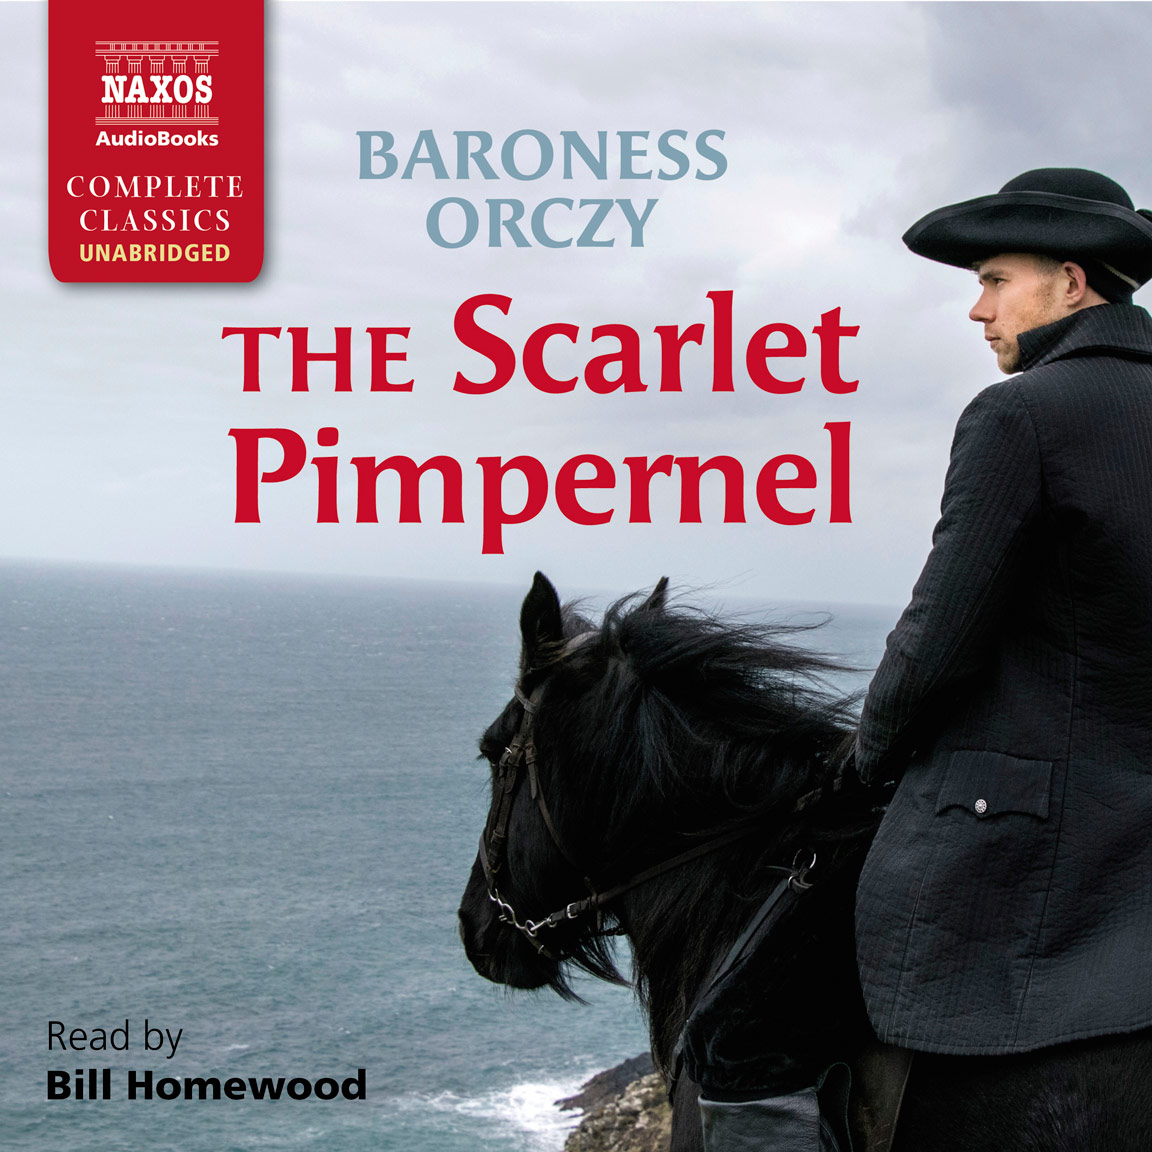 The Scarlet Pimpernel (unabridged)